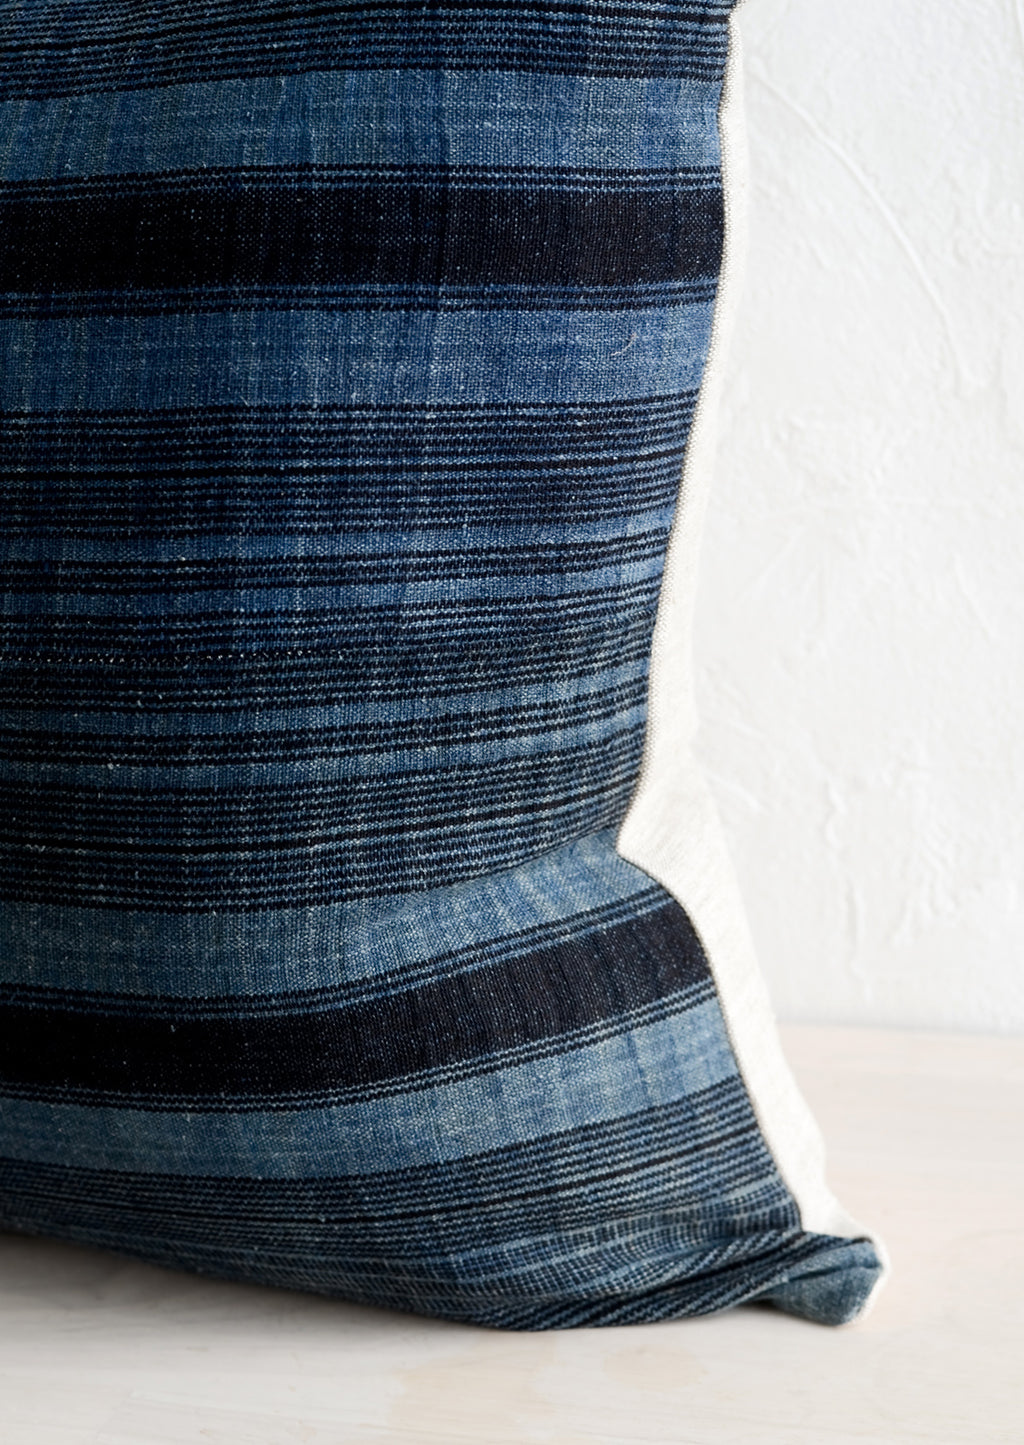 3: Indigo fabric with variegated black stripes.